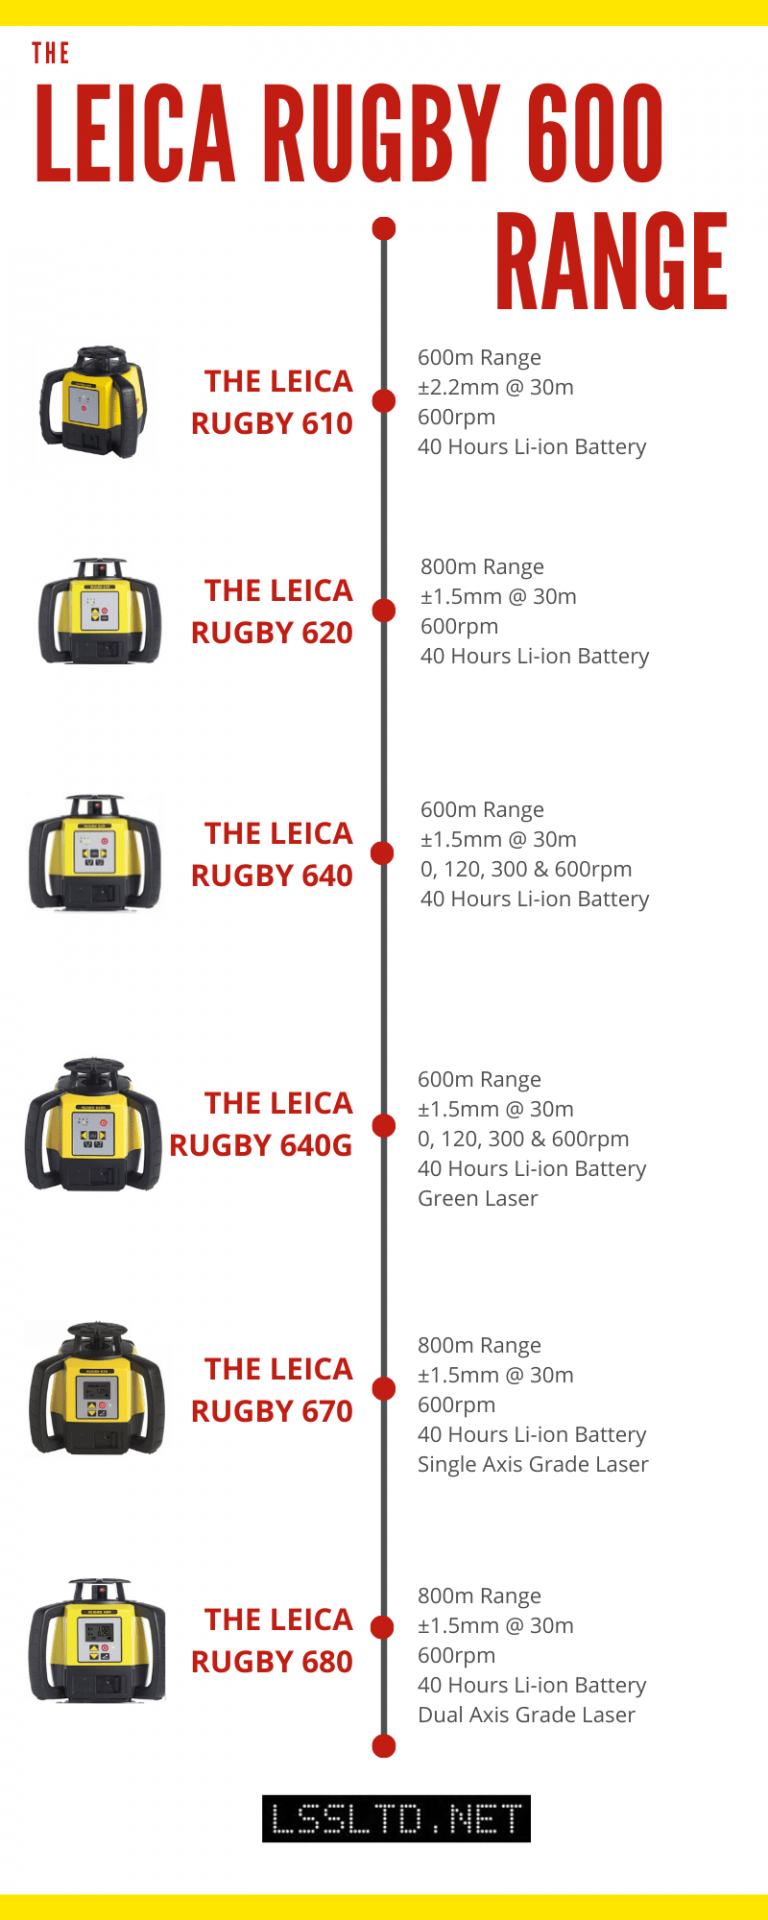 Leica Rugby 600 Series Range of rotating laser levels